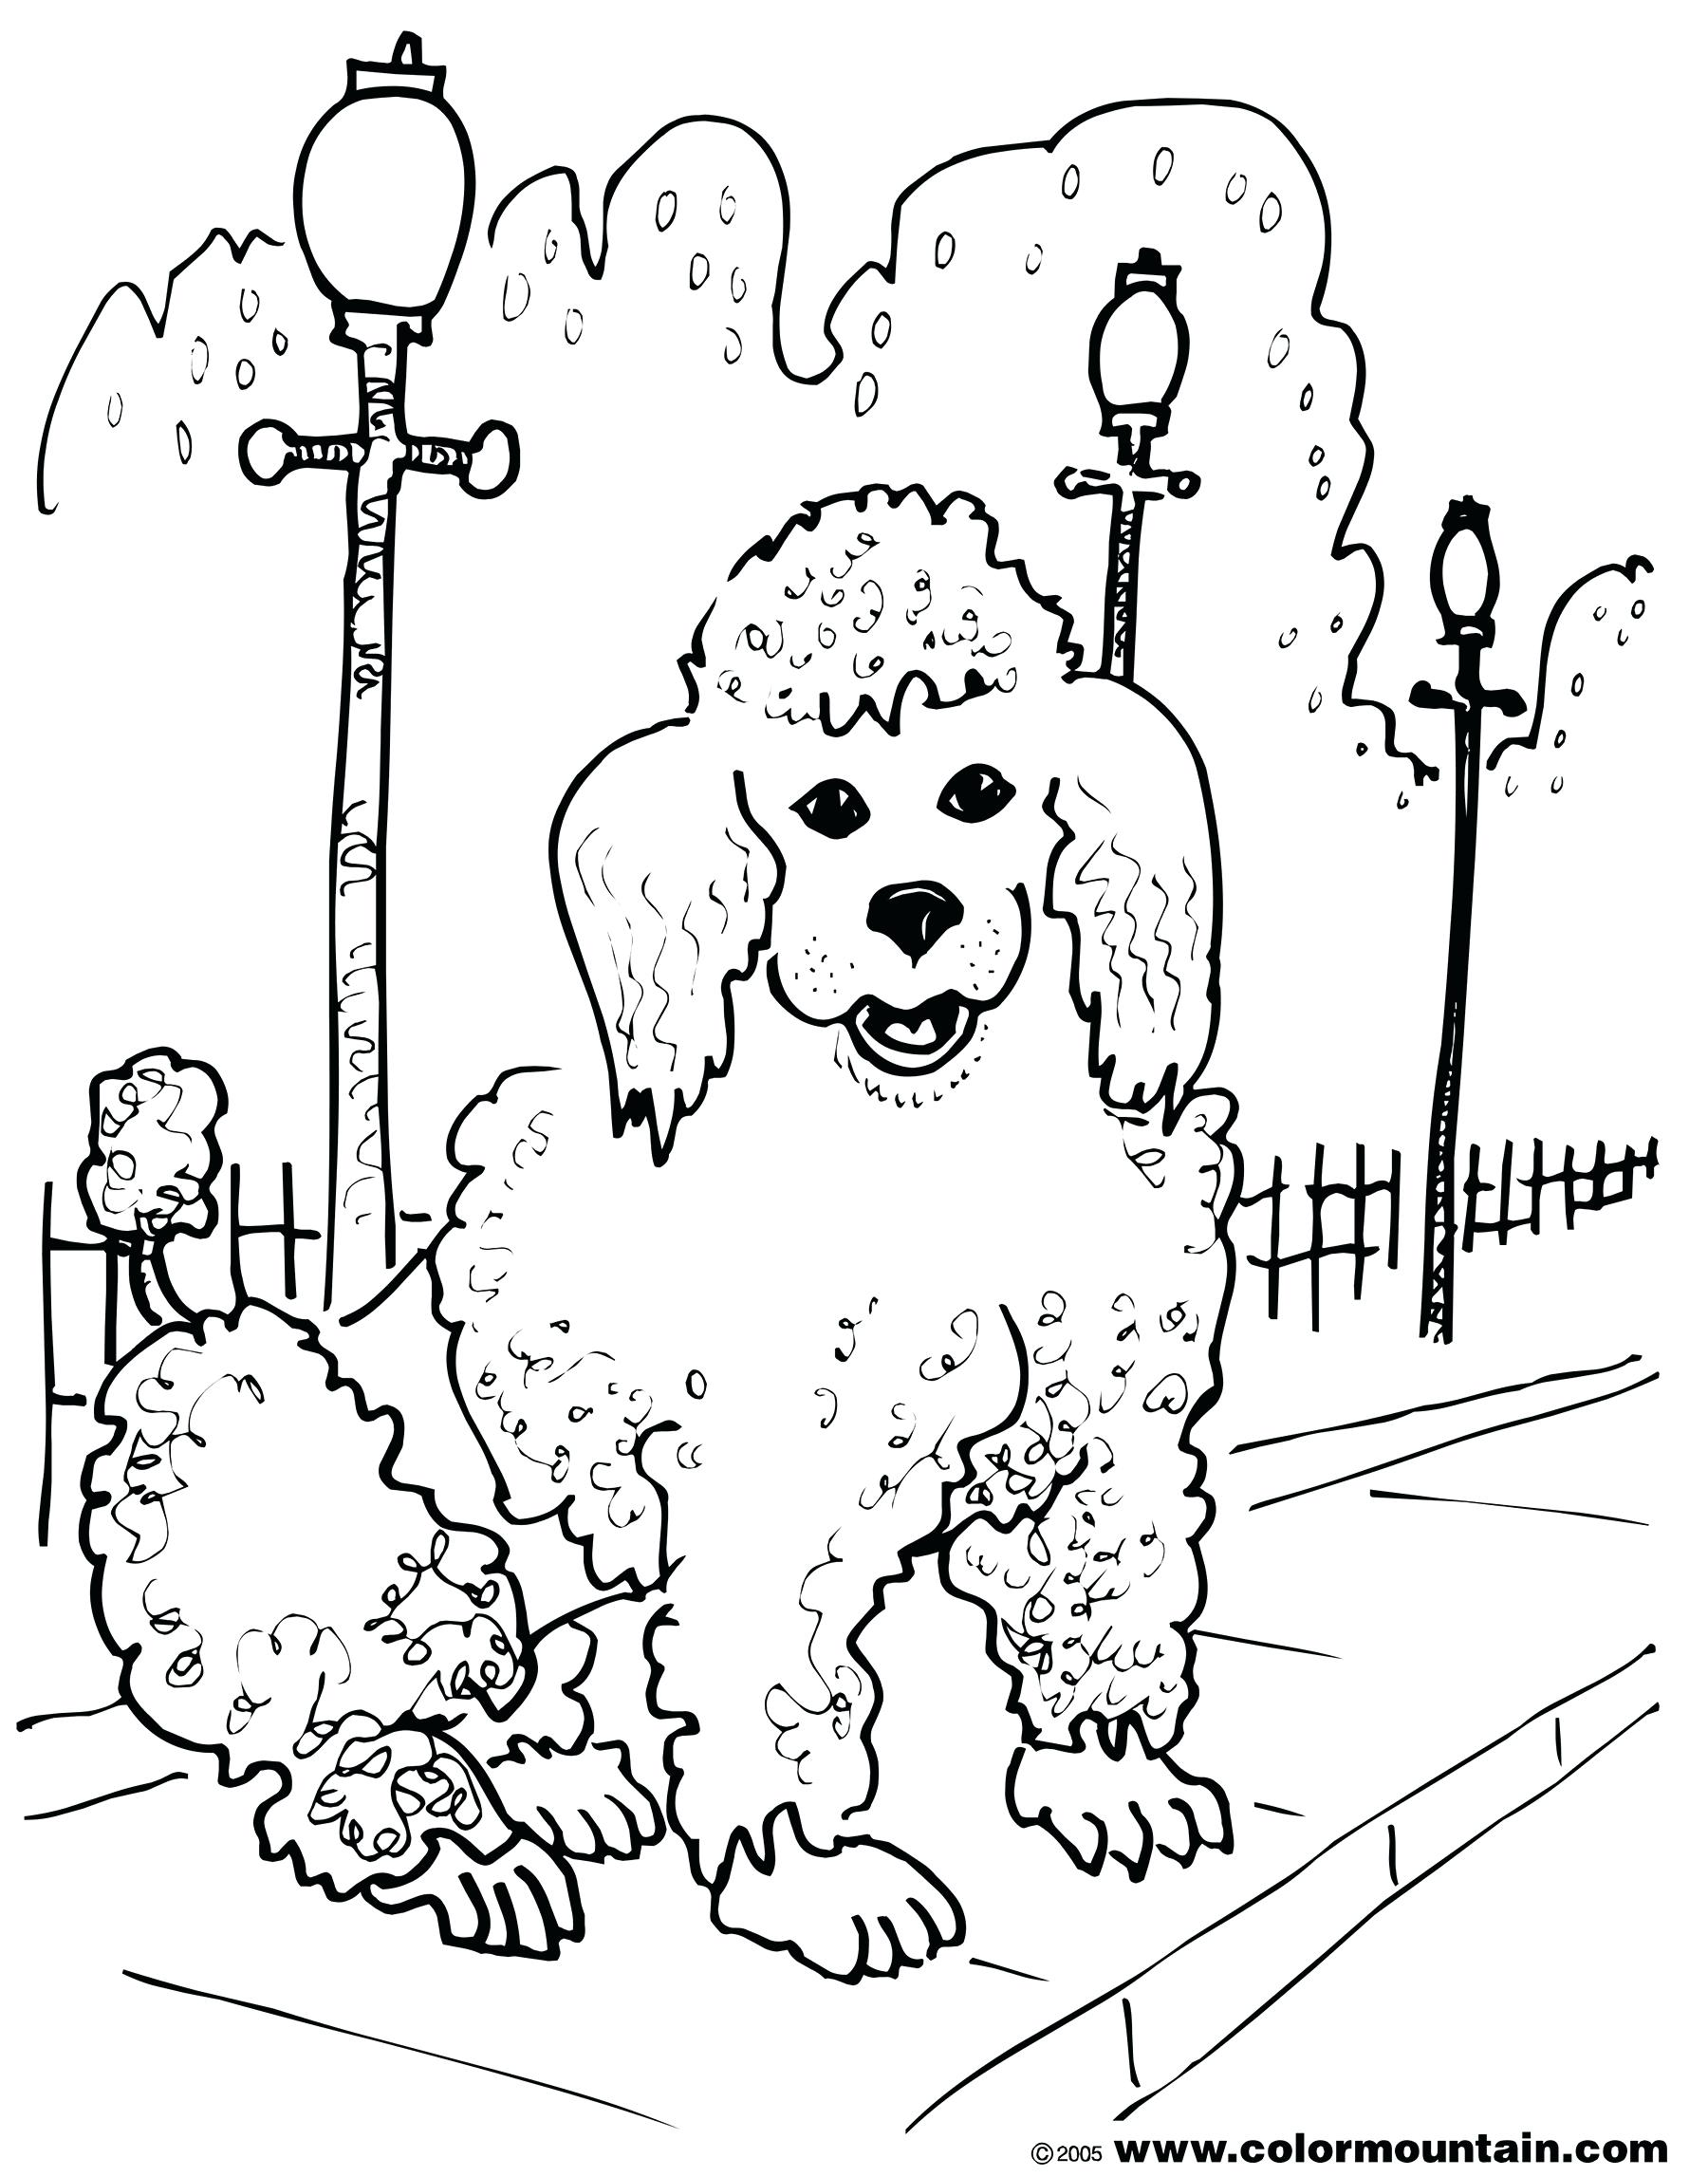 1800x2294 Coloring Poodle Coloring Pages How To Draw A Puppy Step 6. Poodle